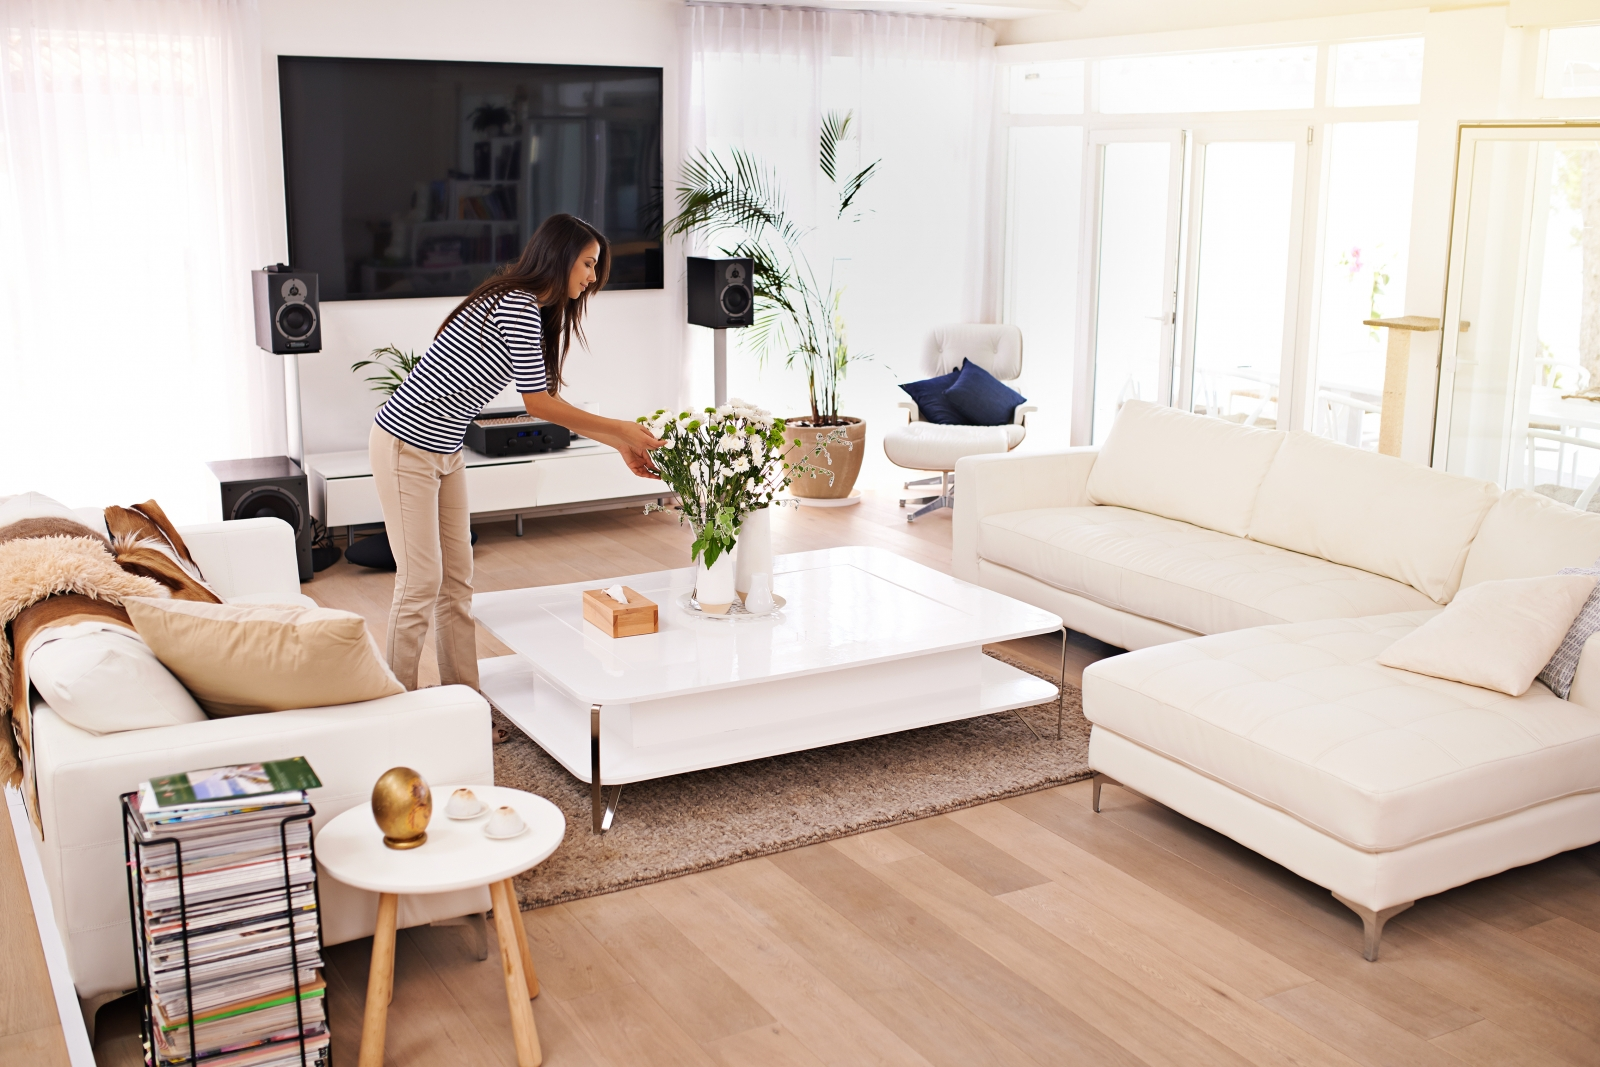 Woof floored living room decorated with modern white furniture, and a woman arranging flowers on the coffee table.